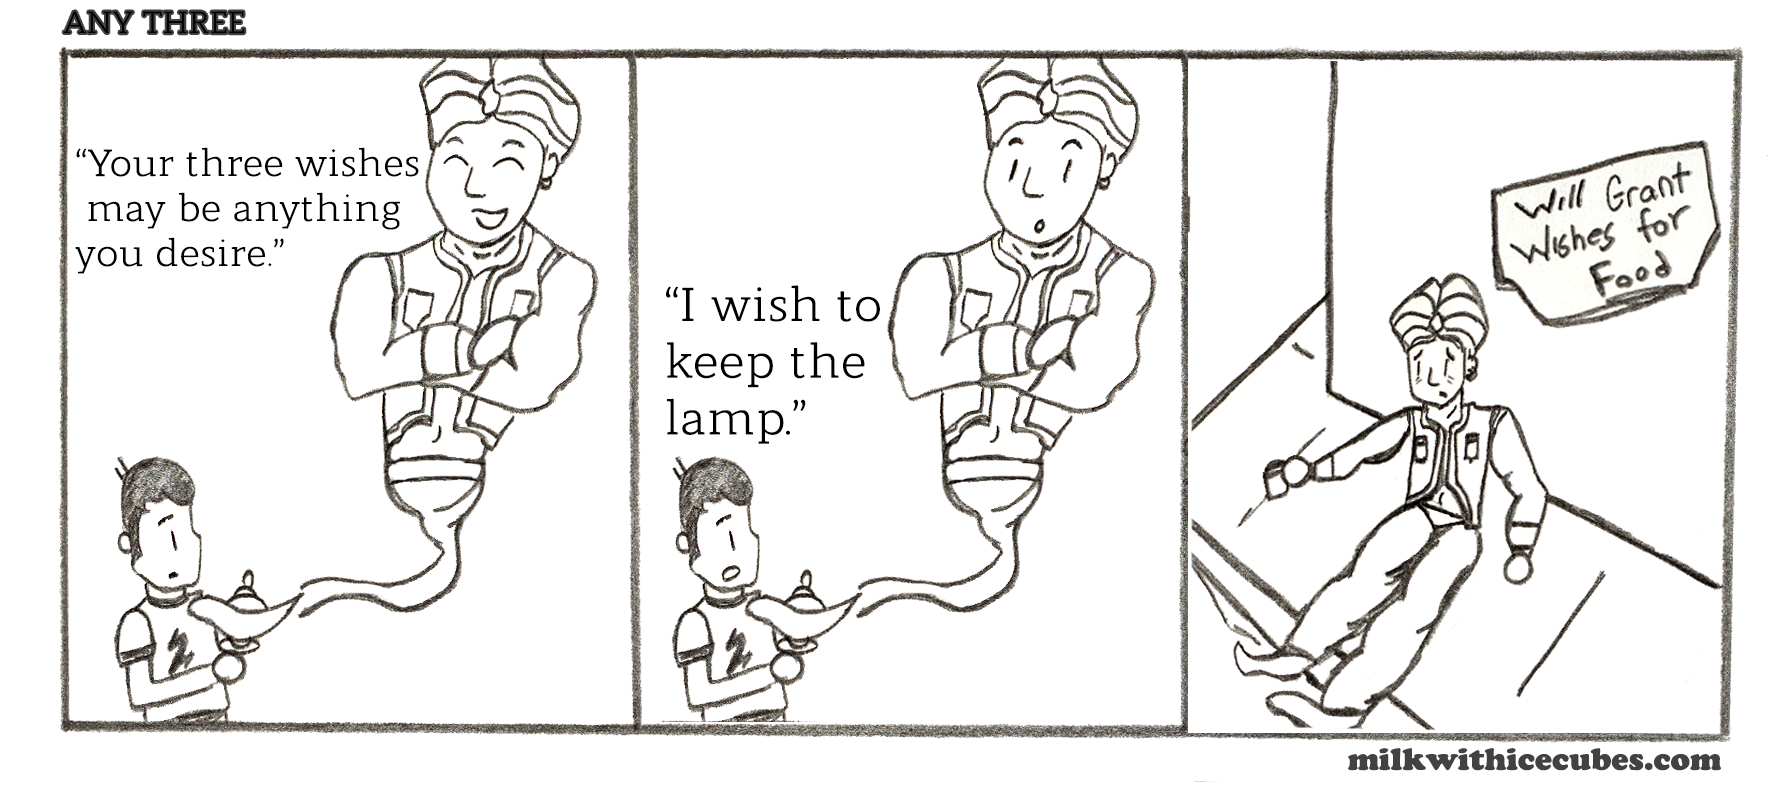 geni, three wishes, loophole, milk